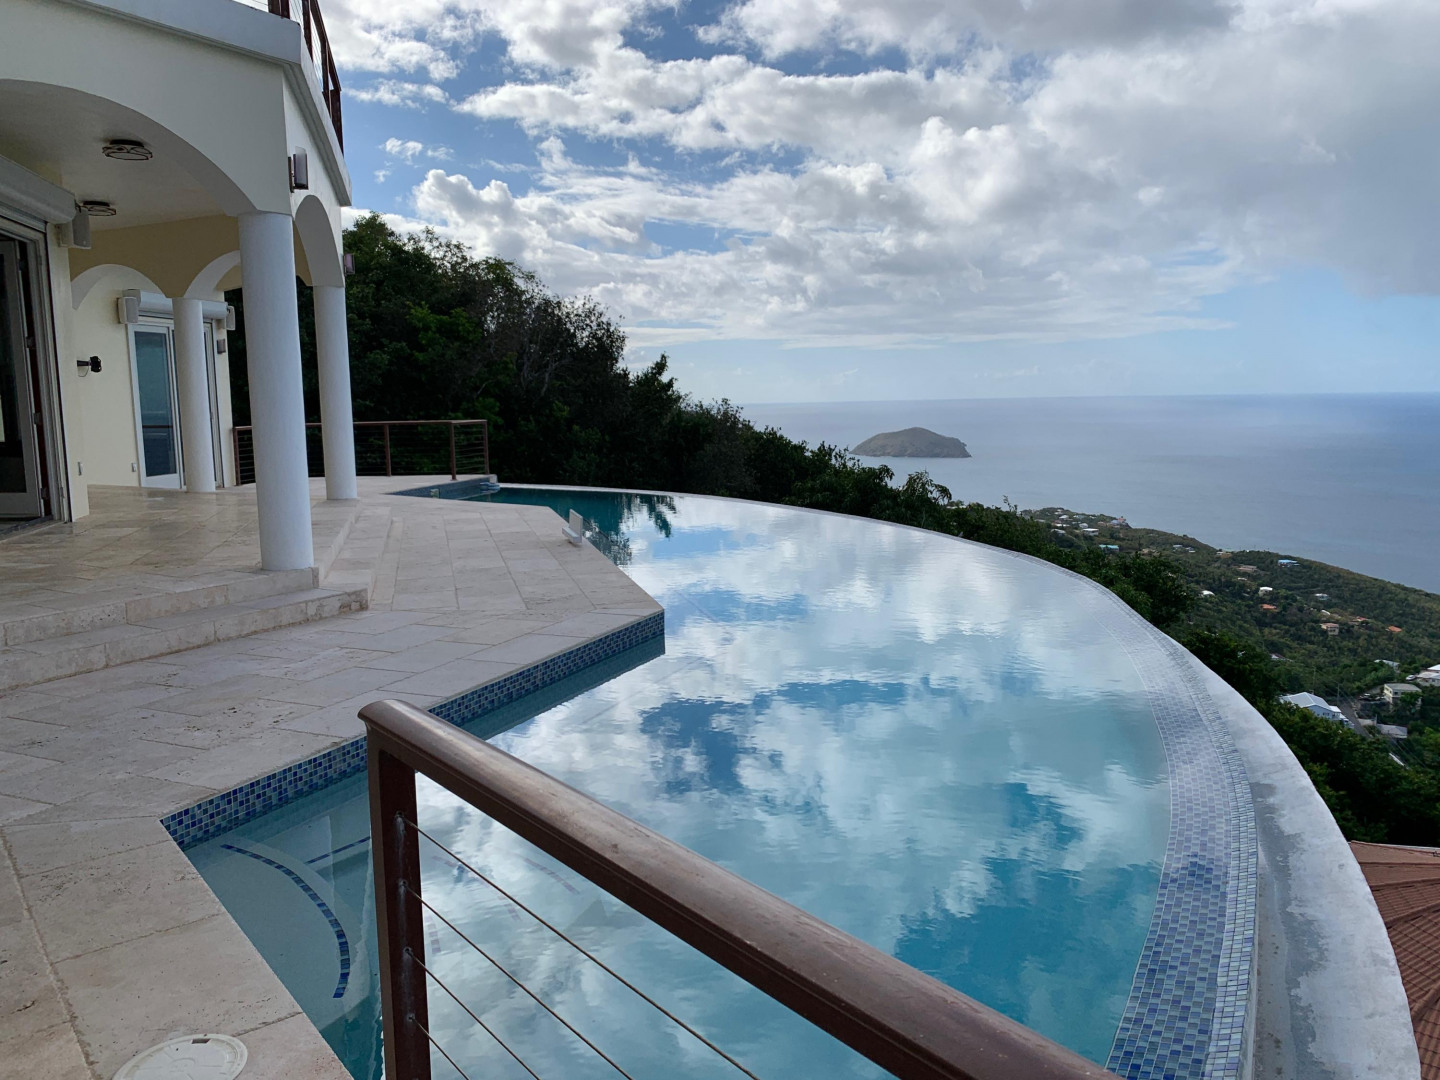 Home Rental with Pool & Patio on St. Thomas